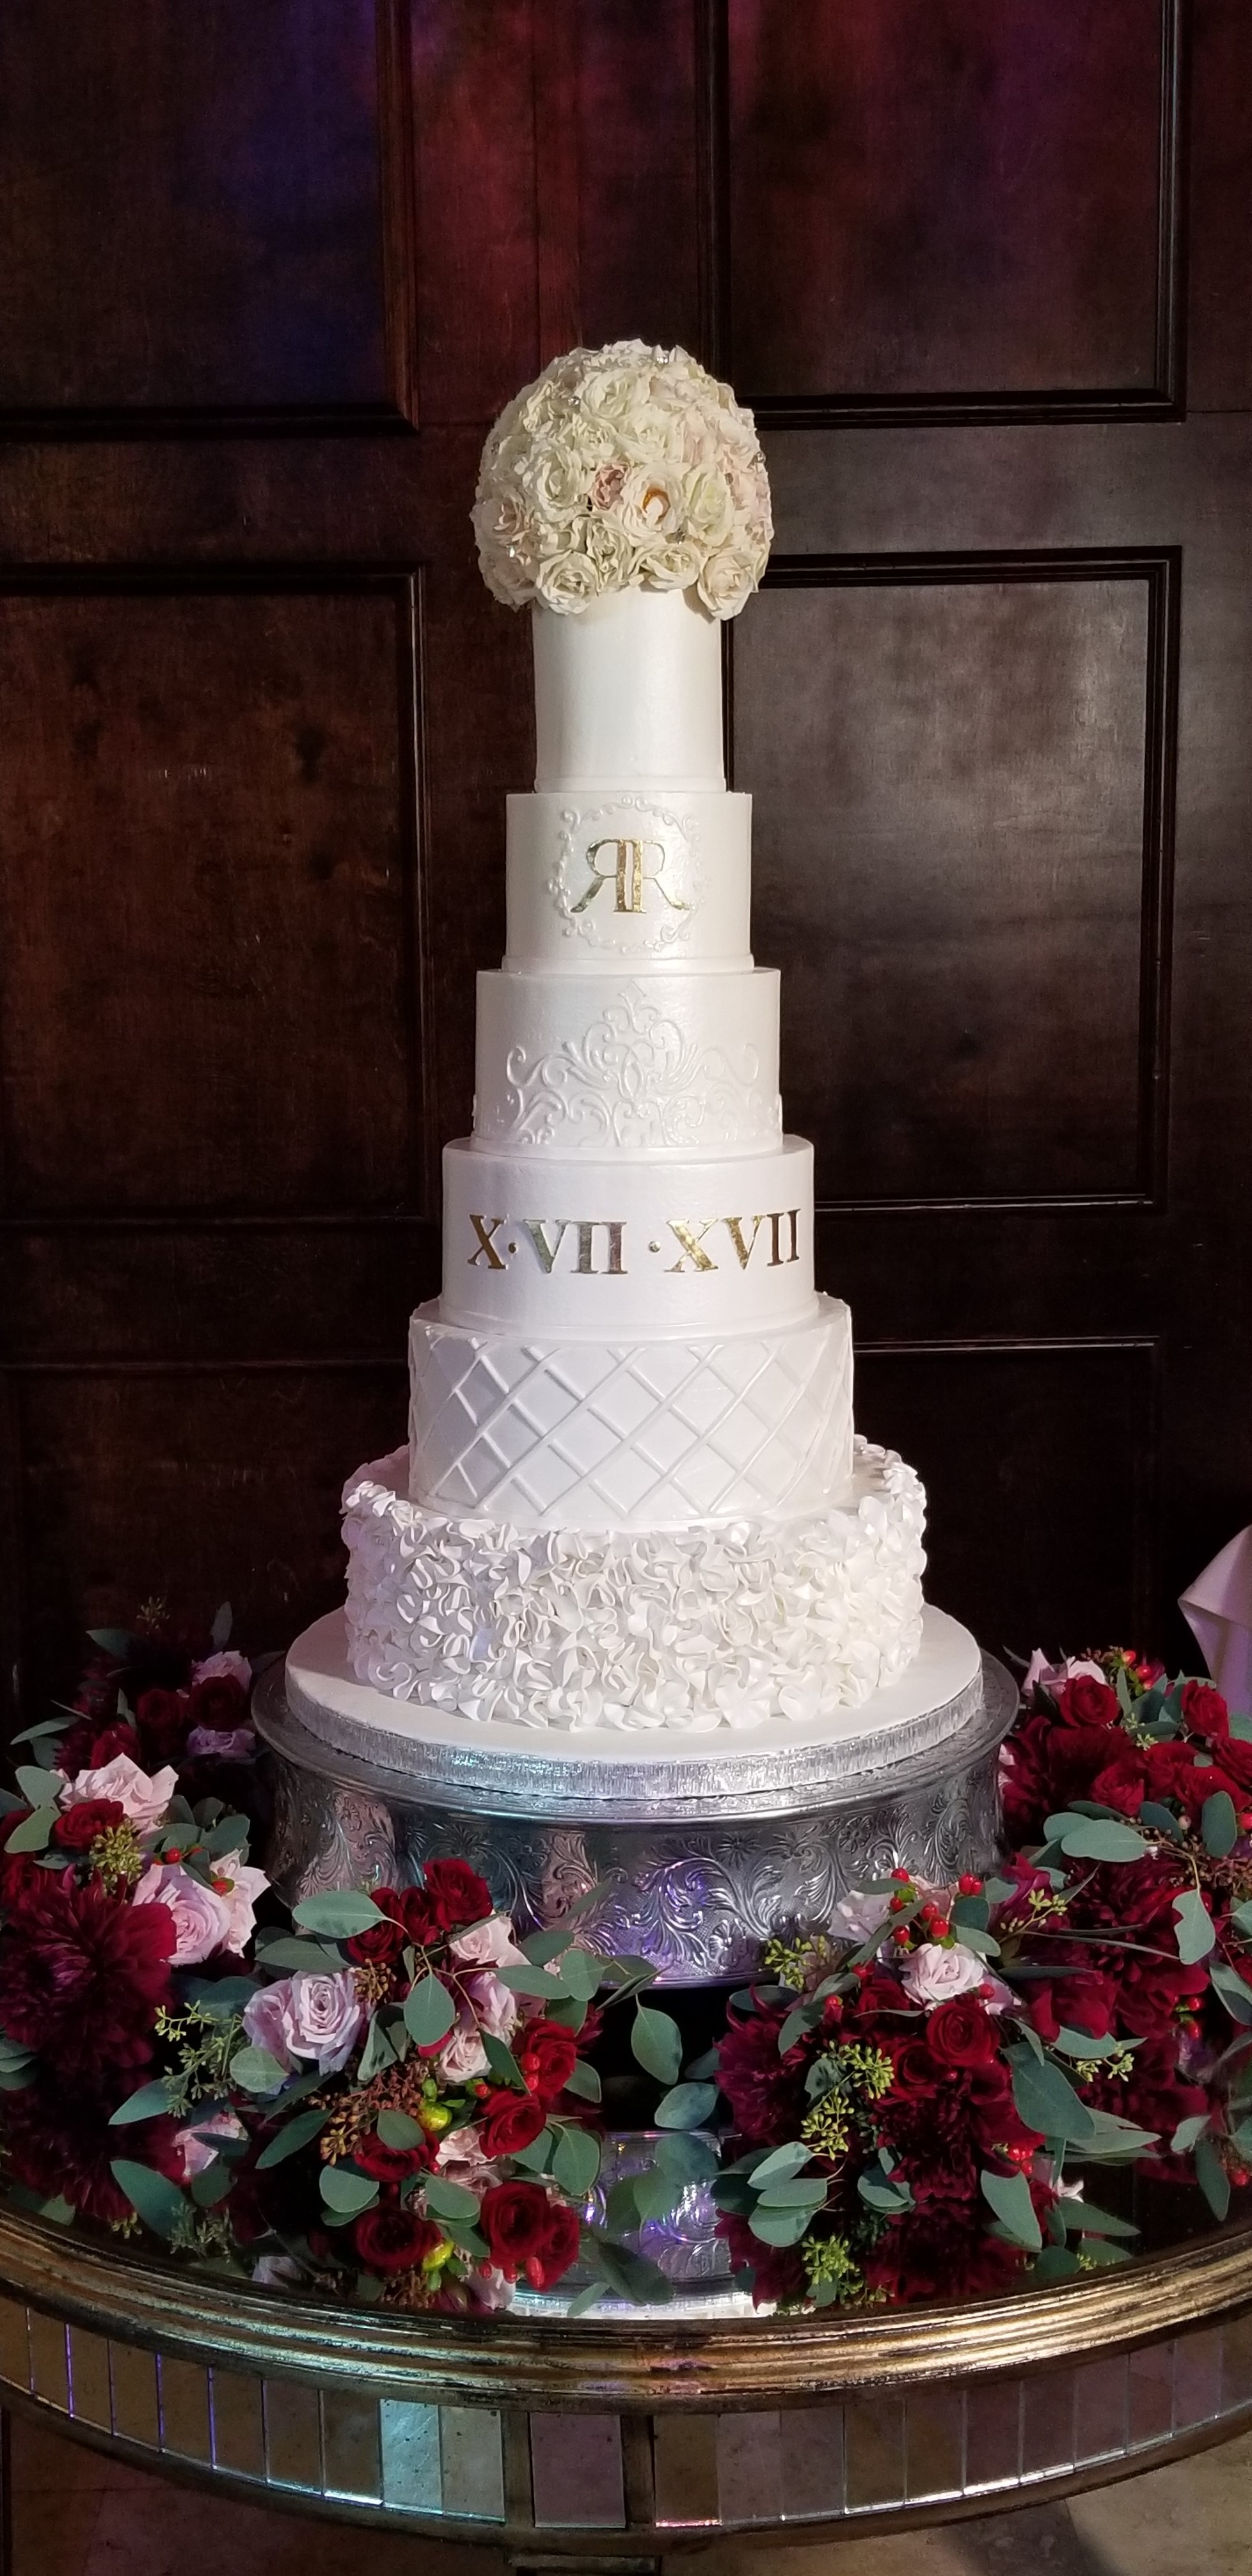 wedding cakes by tammy allen houston tx business directory. Black Bedroom Furniture Sets. Home Design Ideas